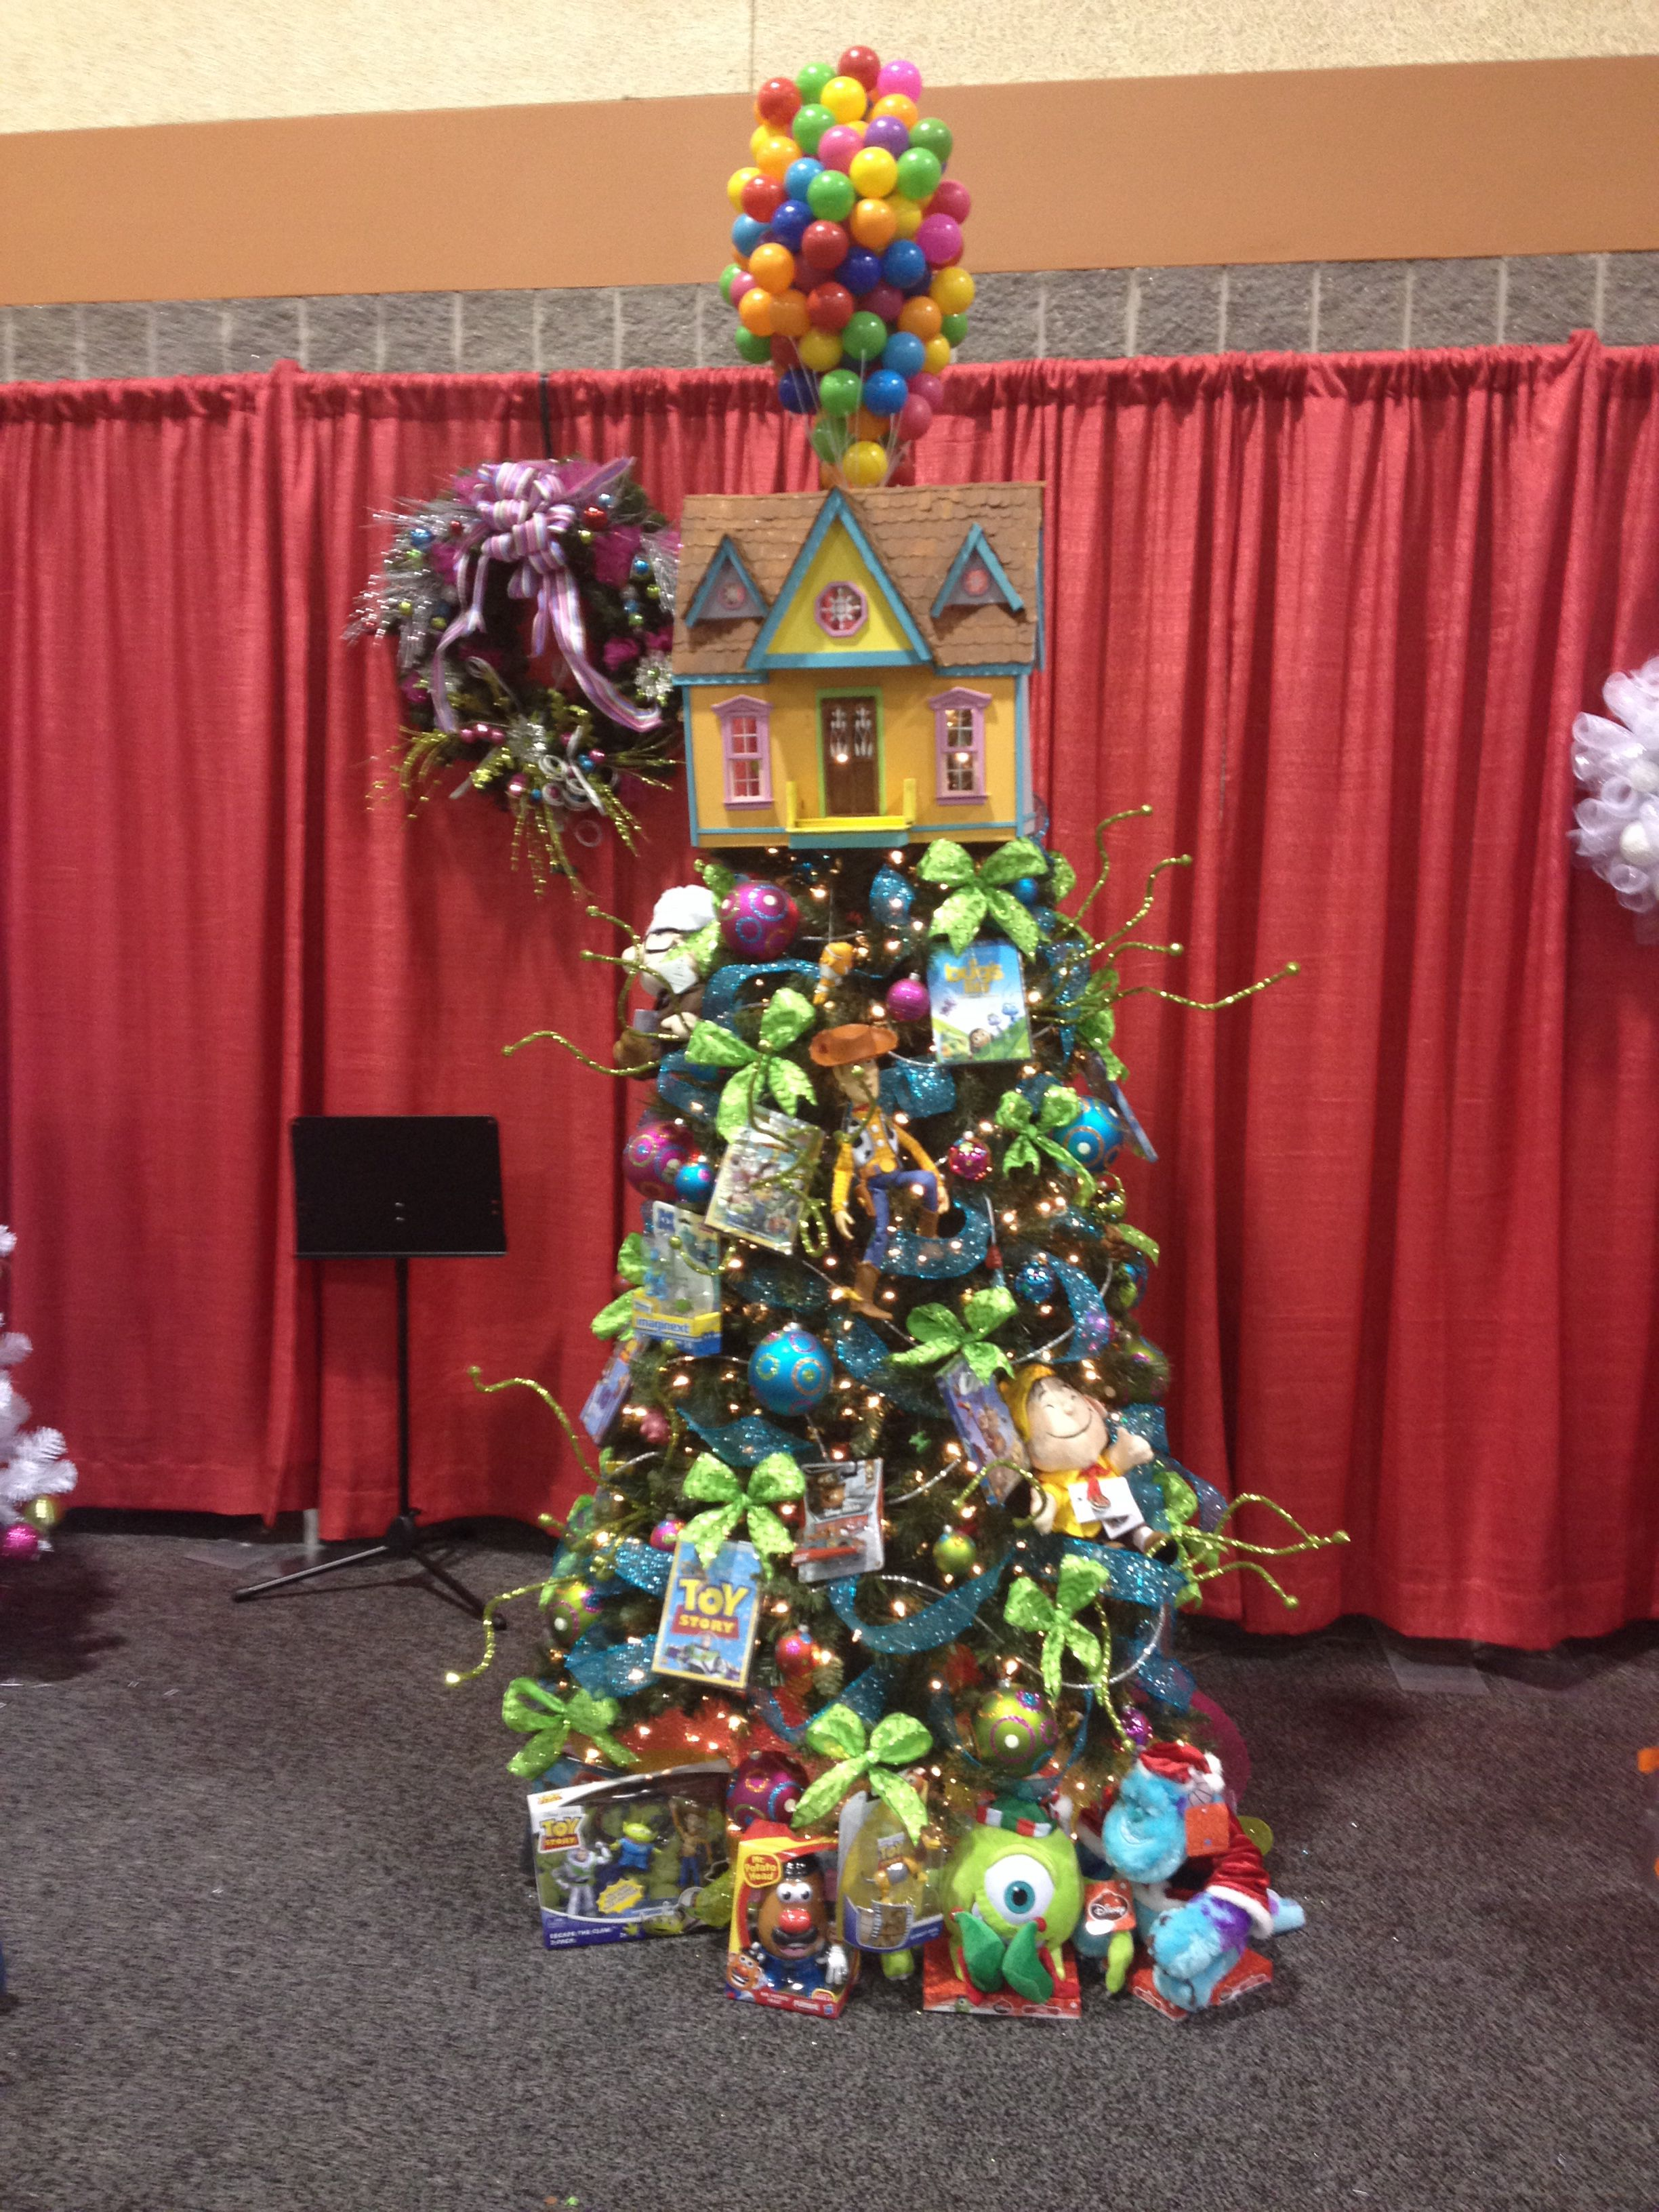 disney pixar themed christmas tree up balloon house tree topper christmas tree decorations christmas tree - Disney Themed Christmas Decorations